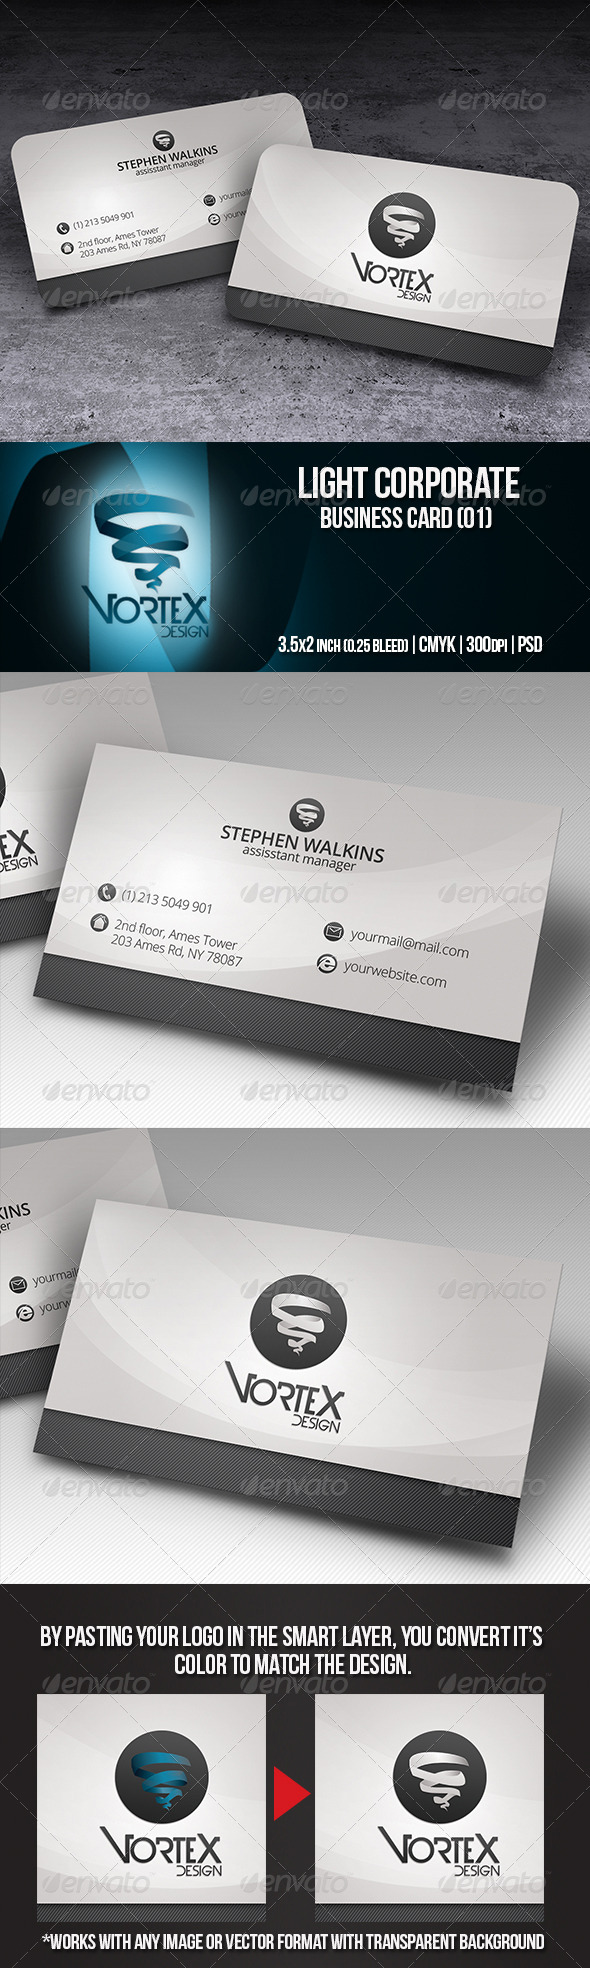 GraphicRiver Light Corporate Business Card 01 5740577